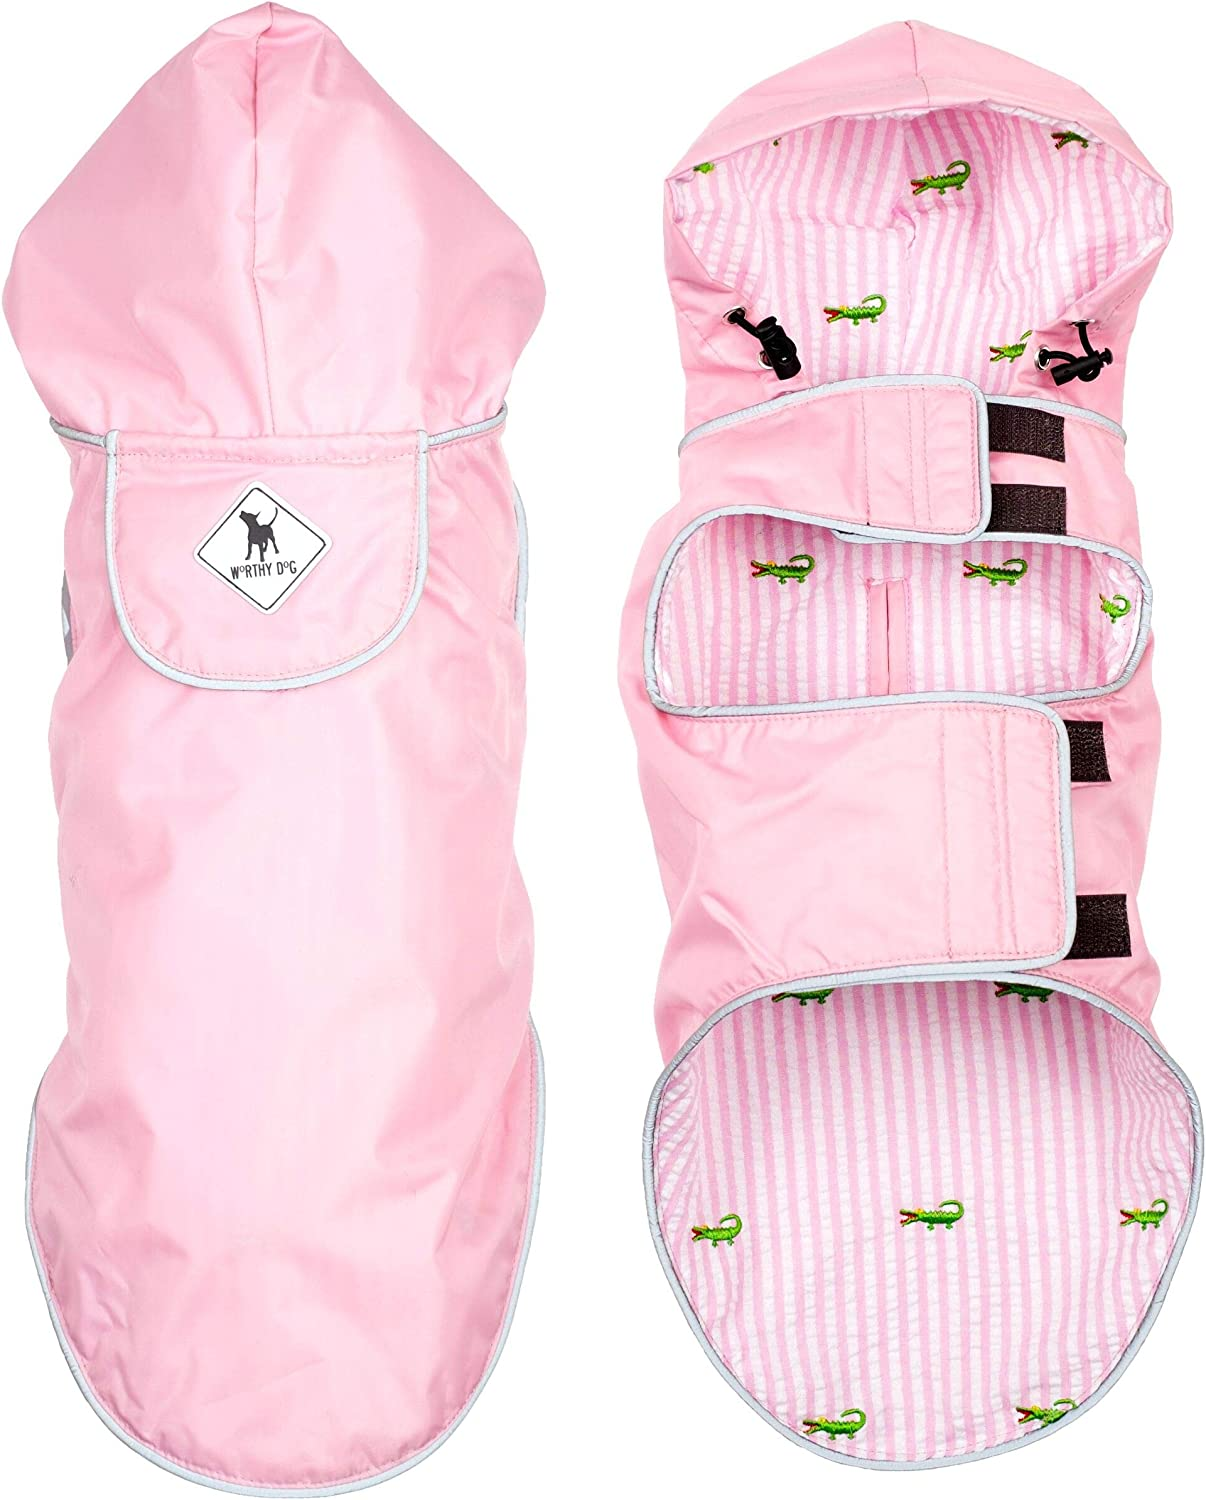 Sale item The Worthy Dog Apex Jacket Made Lined Nylon Water Max 74% OFF Fleece of